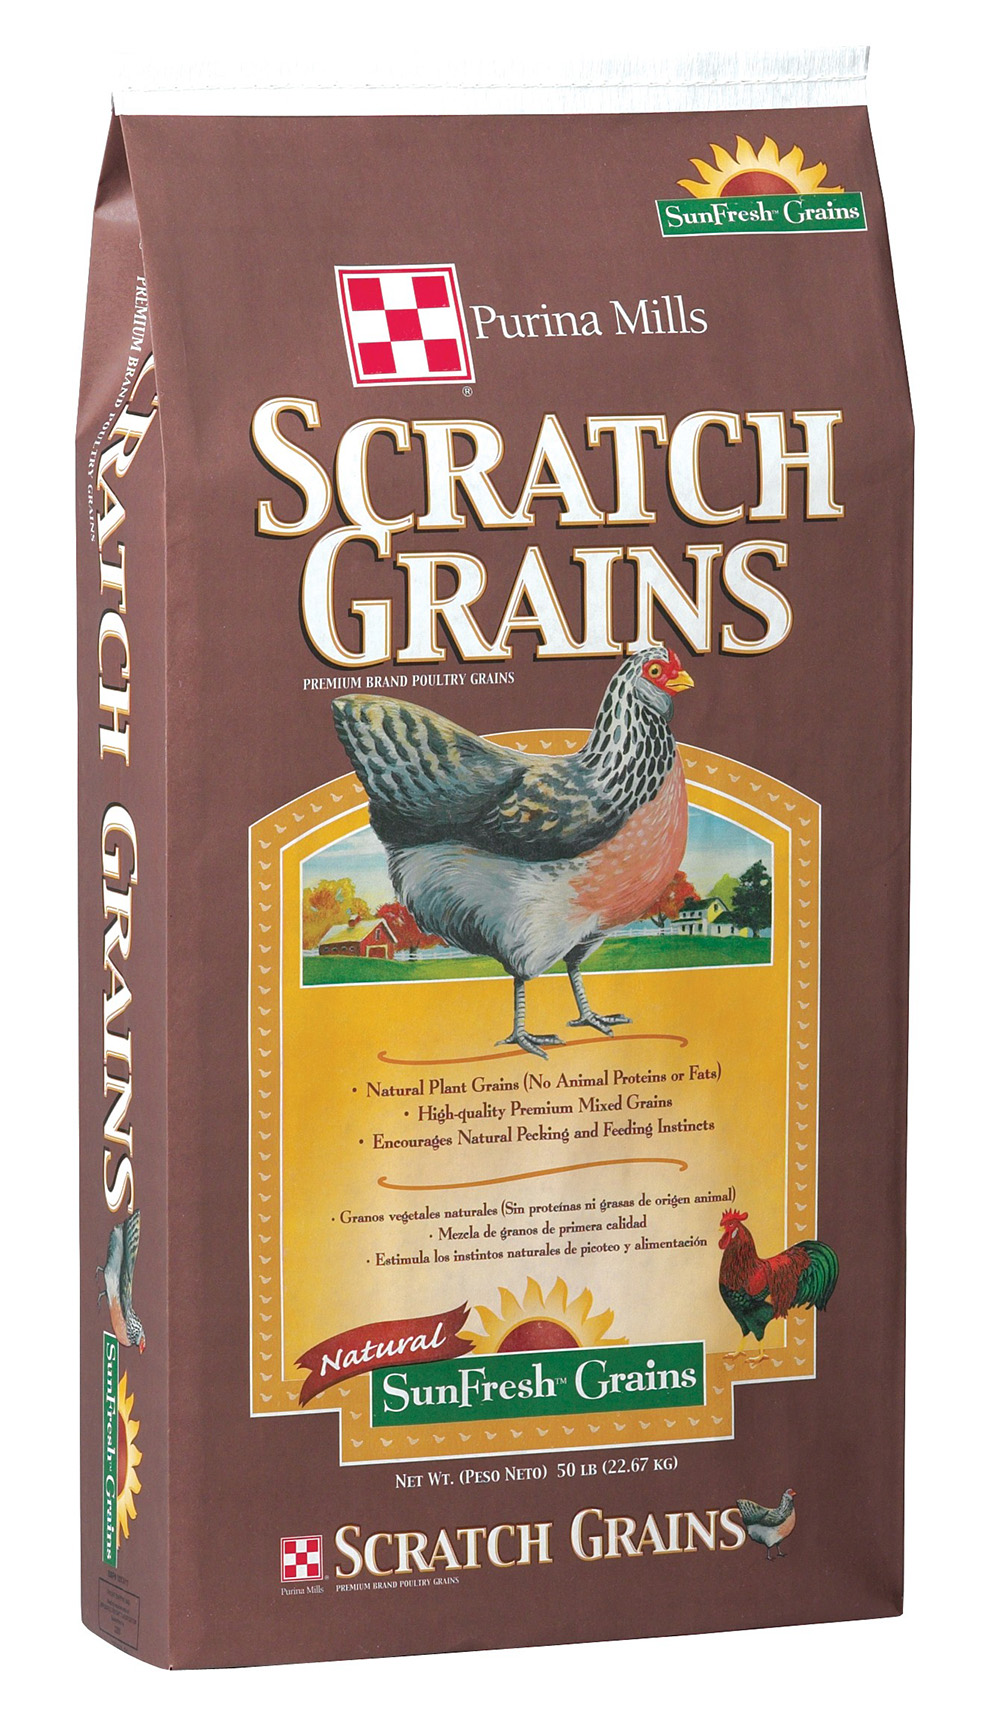 Royal Canin Puppy Food >> Purina Scratch Grains 50 lb.